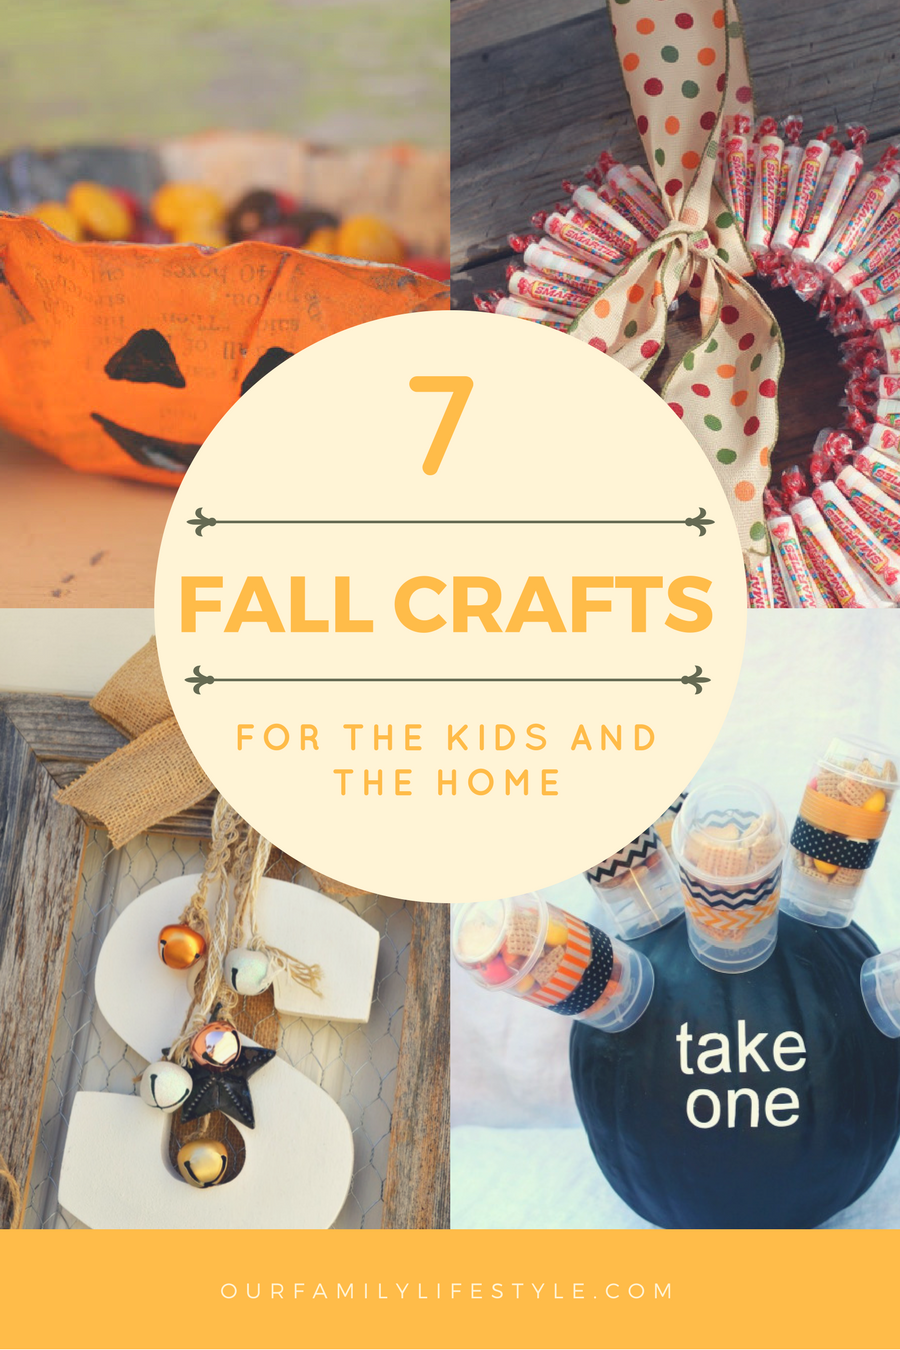 Fall Crafts for the Kids and the home